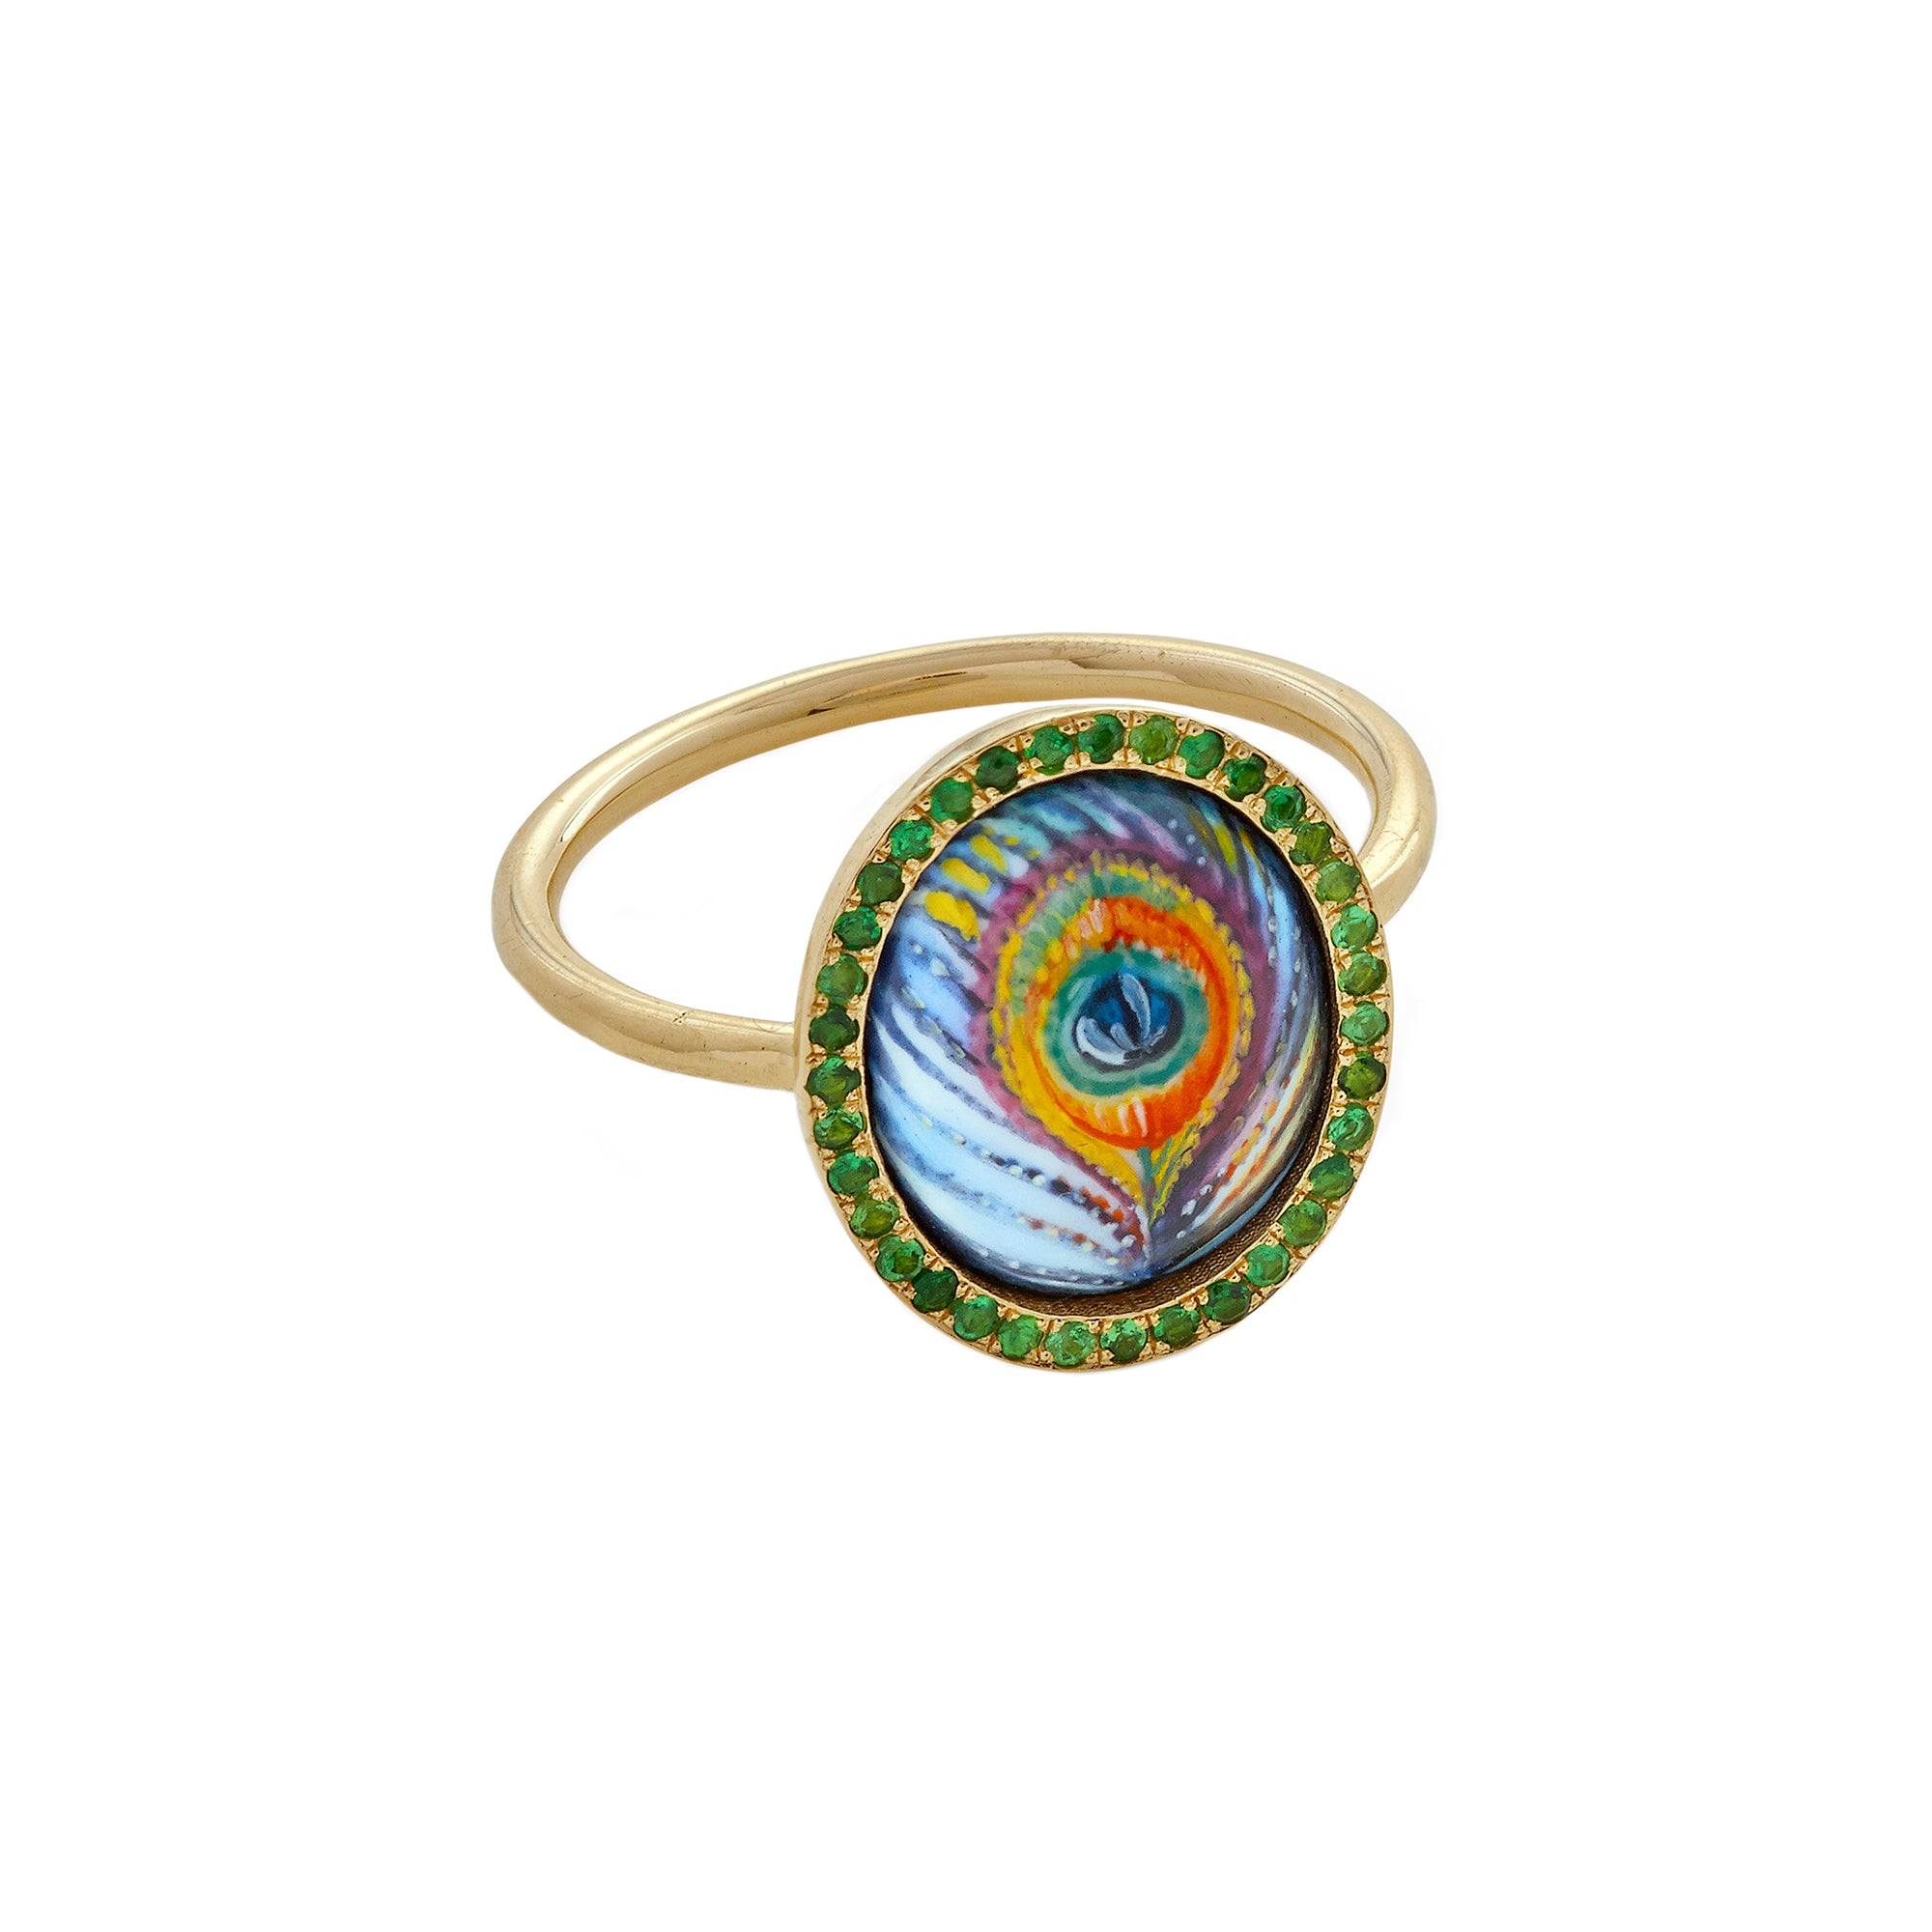 Enamel Peacock Ring - Penelope - Ring | Broken English Jewelry